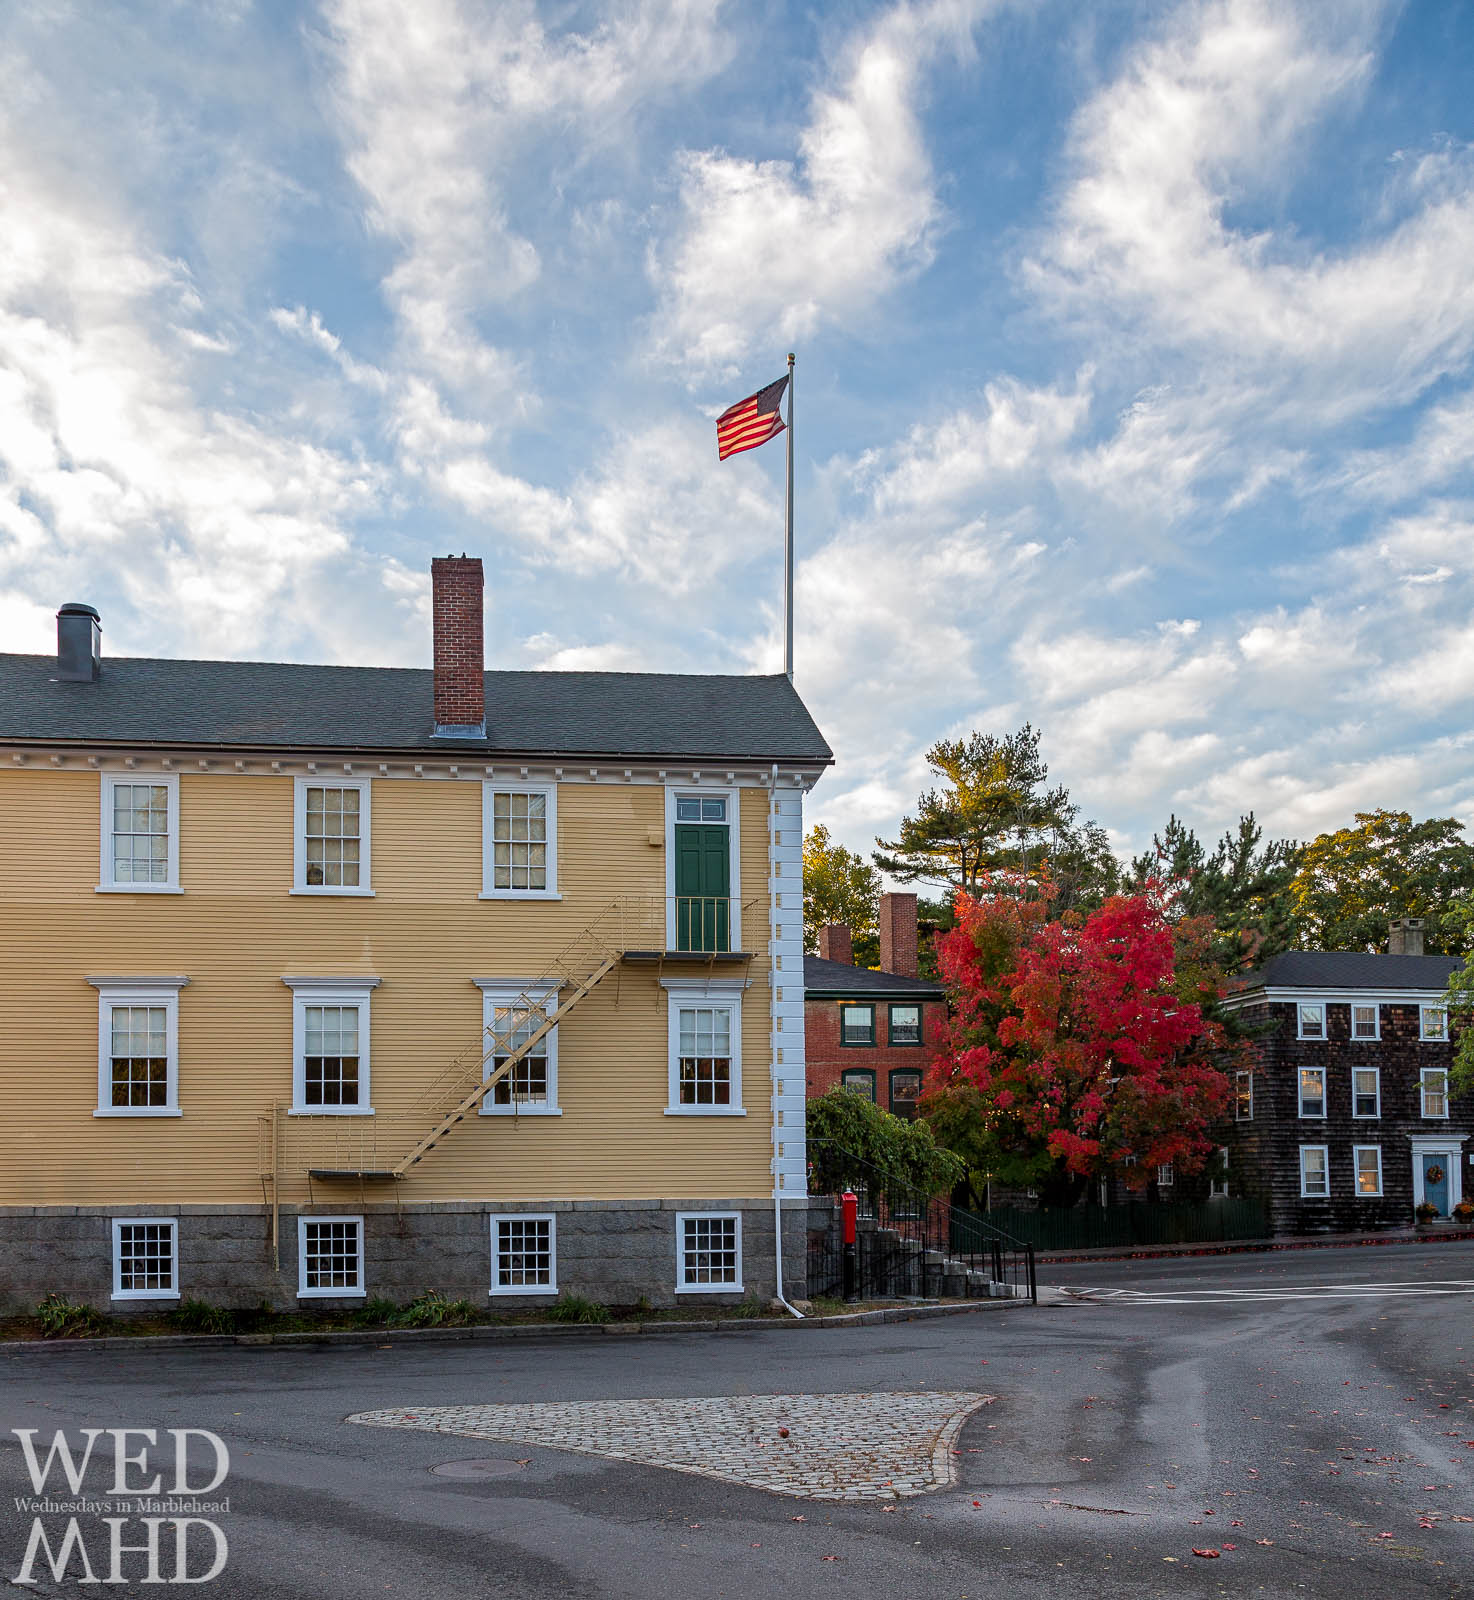 Old Town House and the Maple Tree